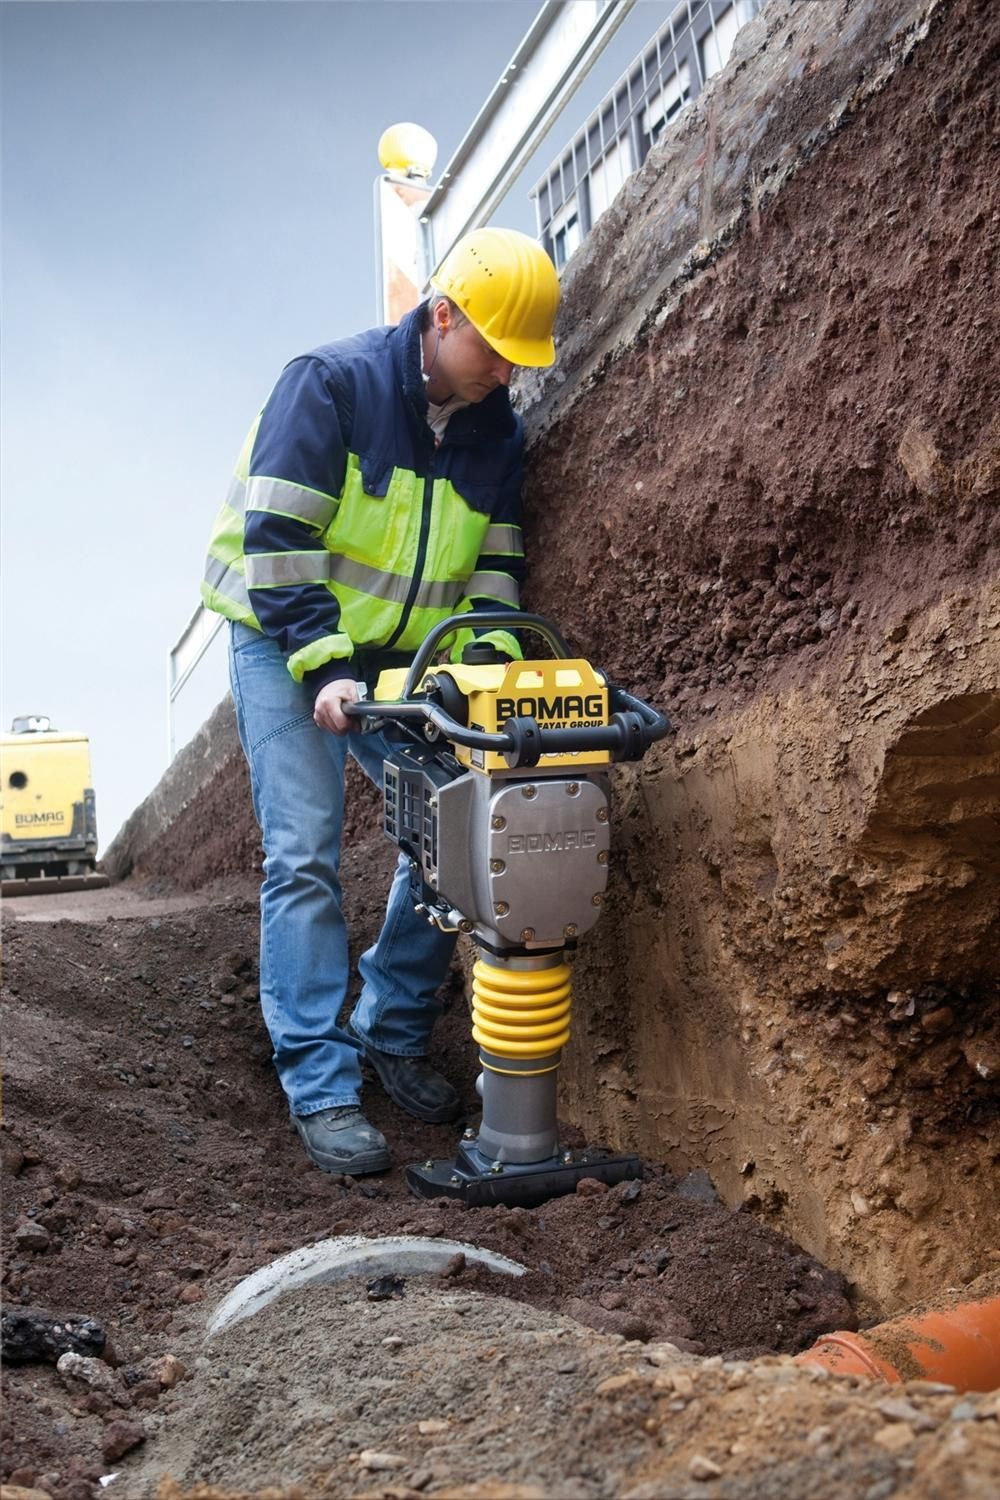 Bomag's BT60/4 and BT65/4 tampers offer the operating convenience of a four-cycle engine while maintaining the high stroke and impact force of a two-cycle model.